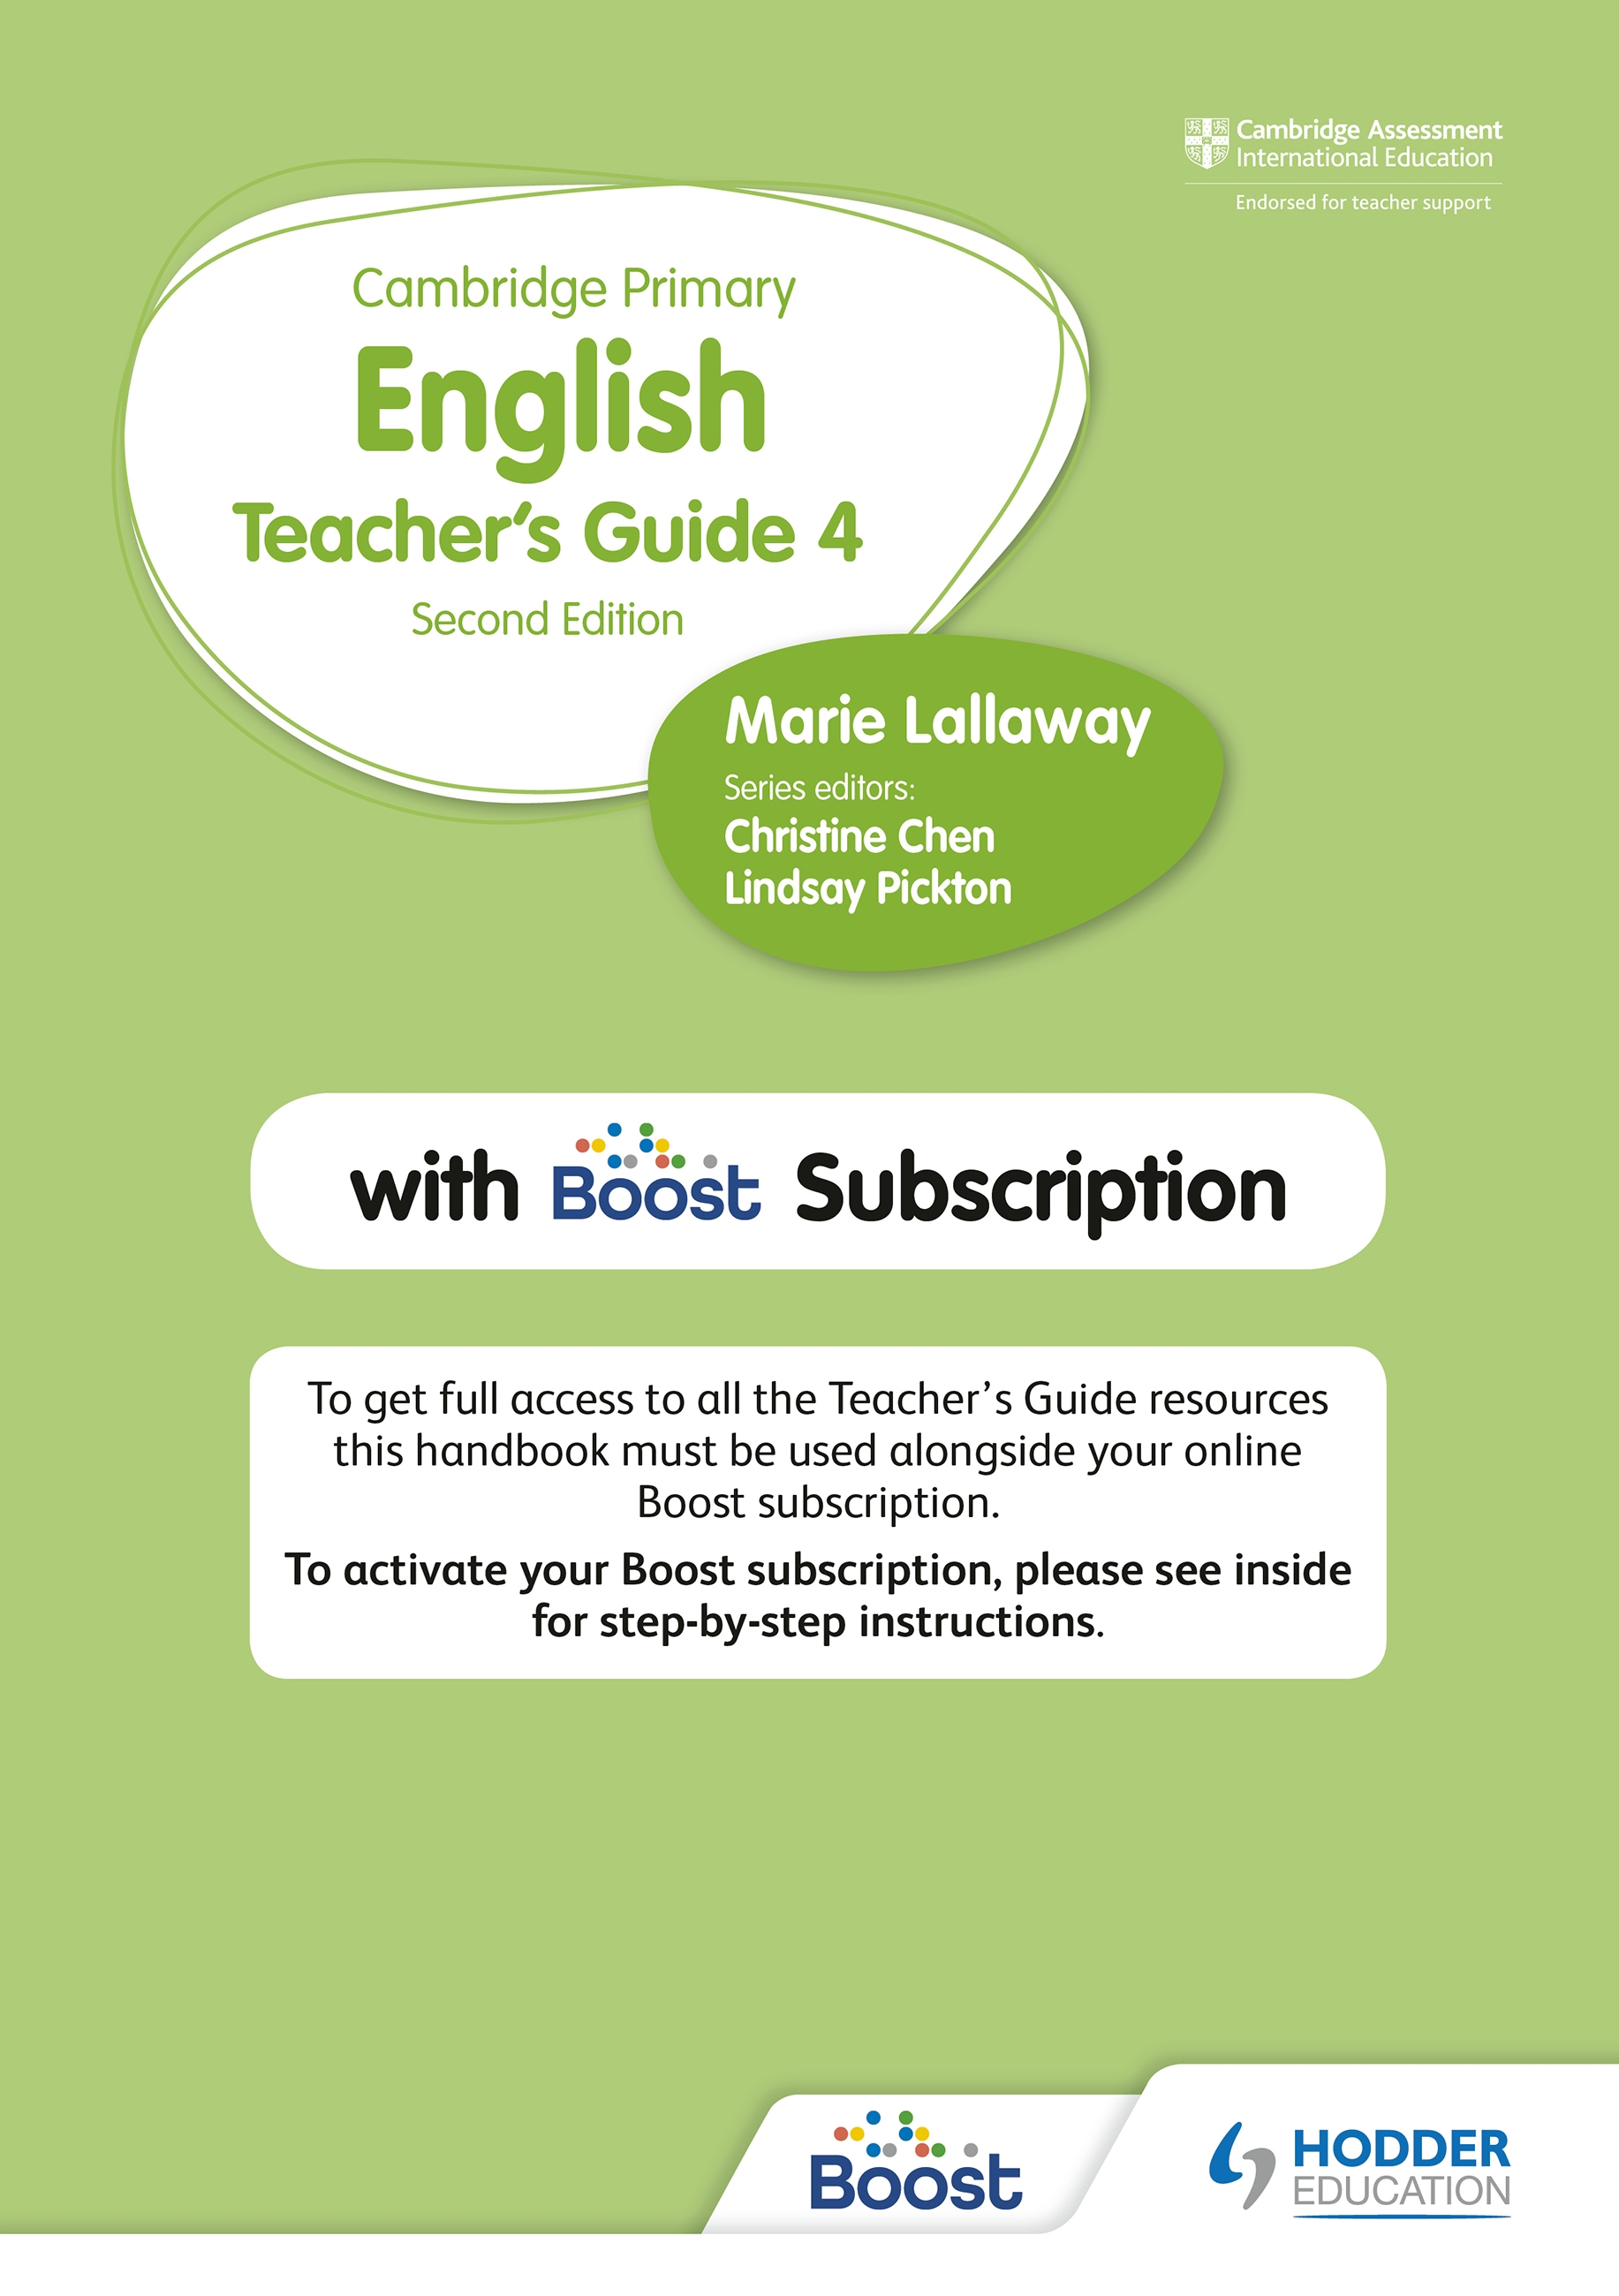 Cambridge Primary English Teacher's Guide 4 with Boost Subscription